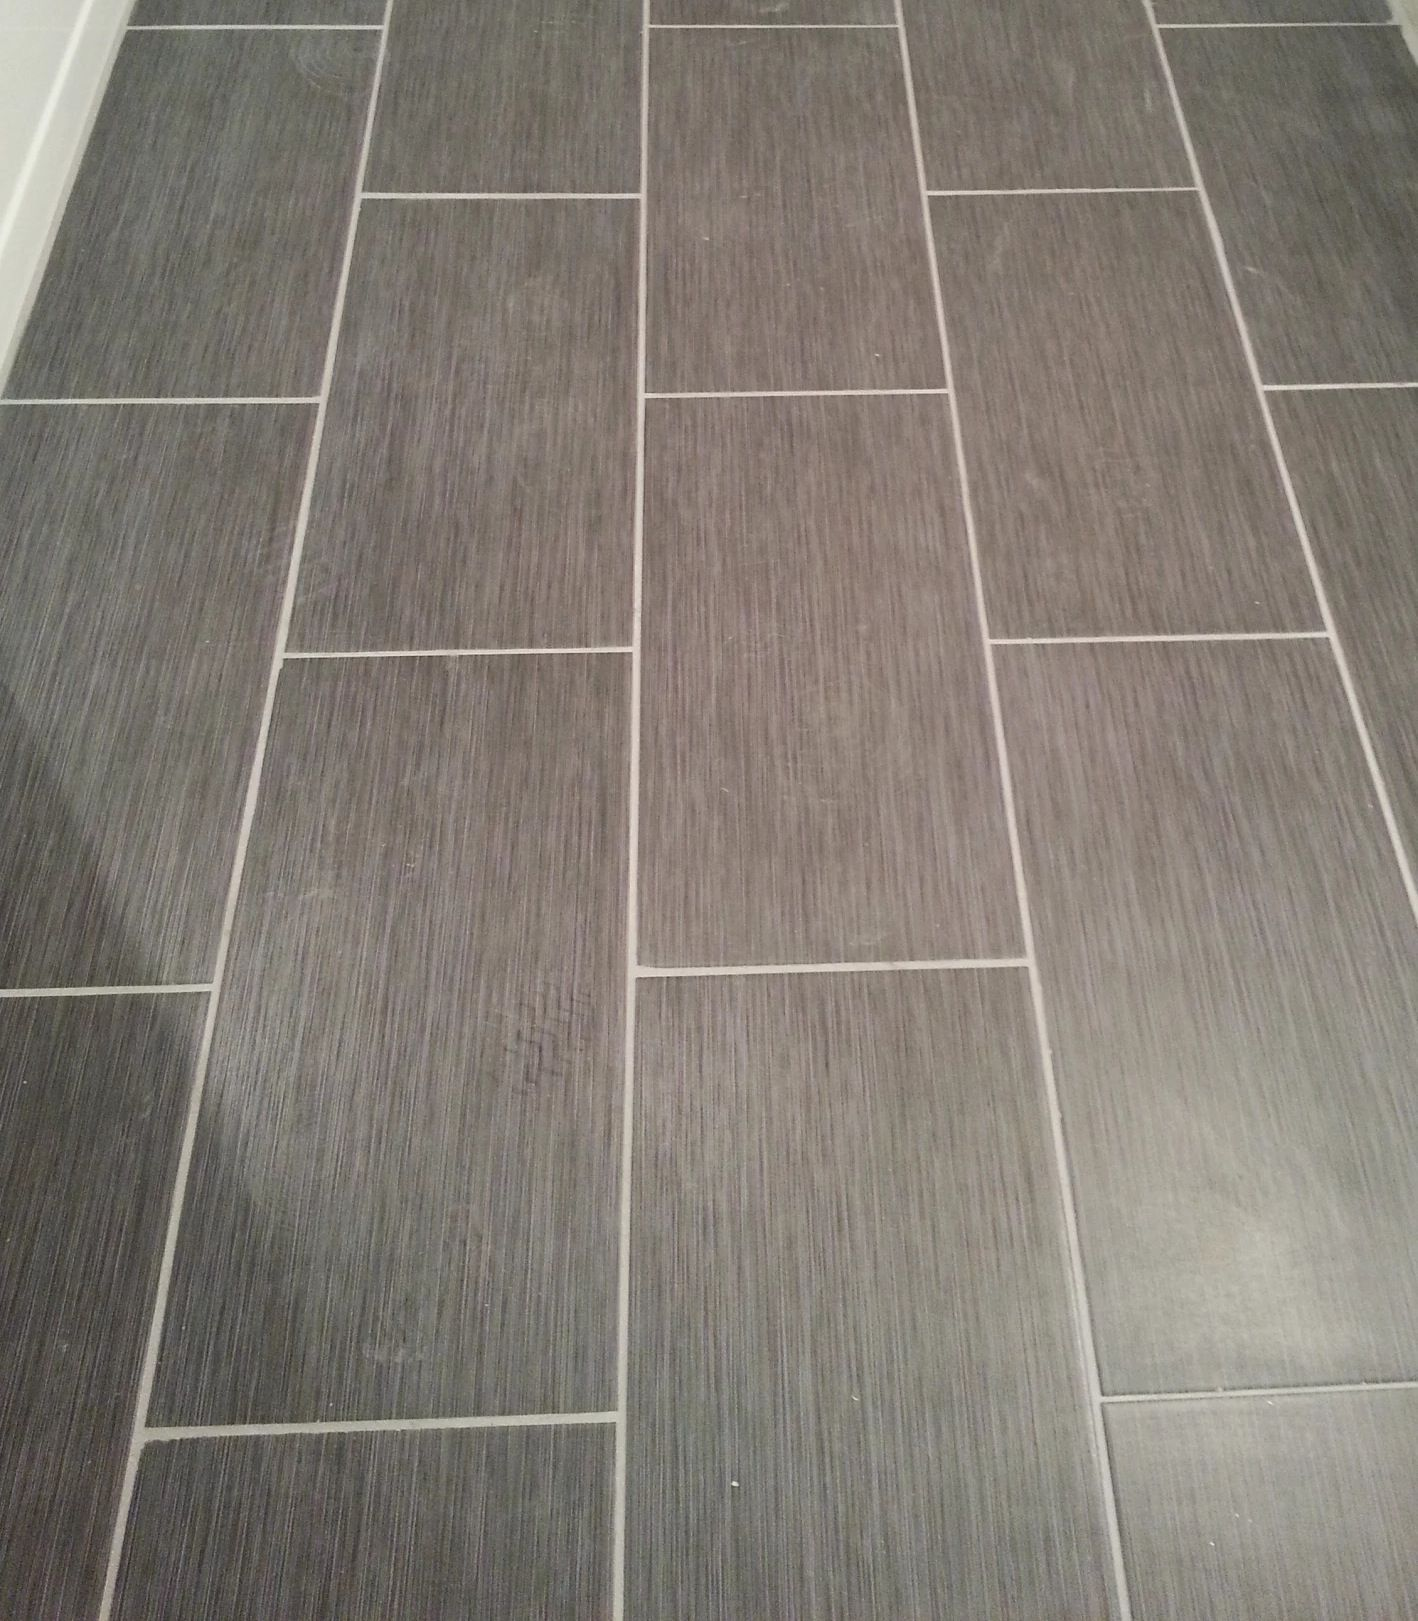 Home Depot Bathroom Tile Floor In 2020 Home Depot Bathroom Tile Home Depot Bathroom Home Depot Kitchen